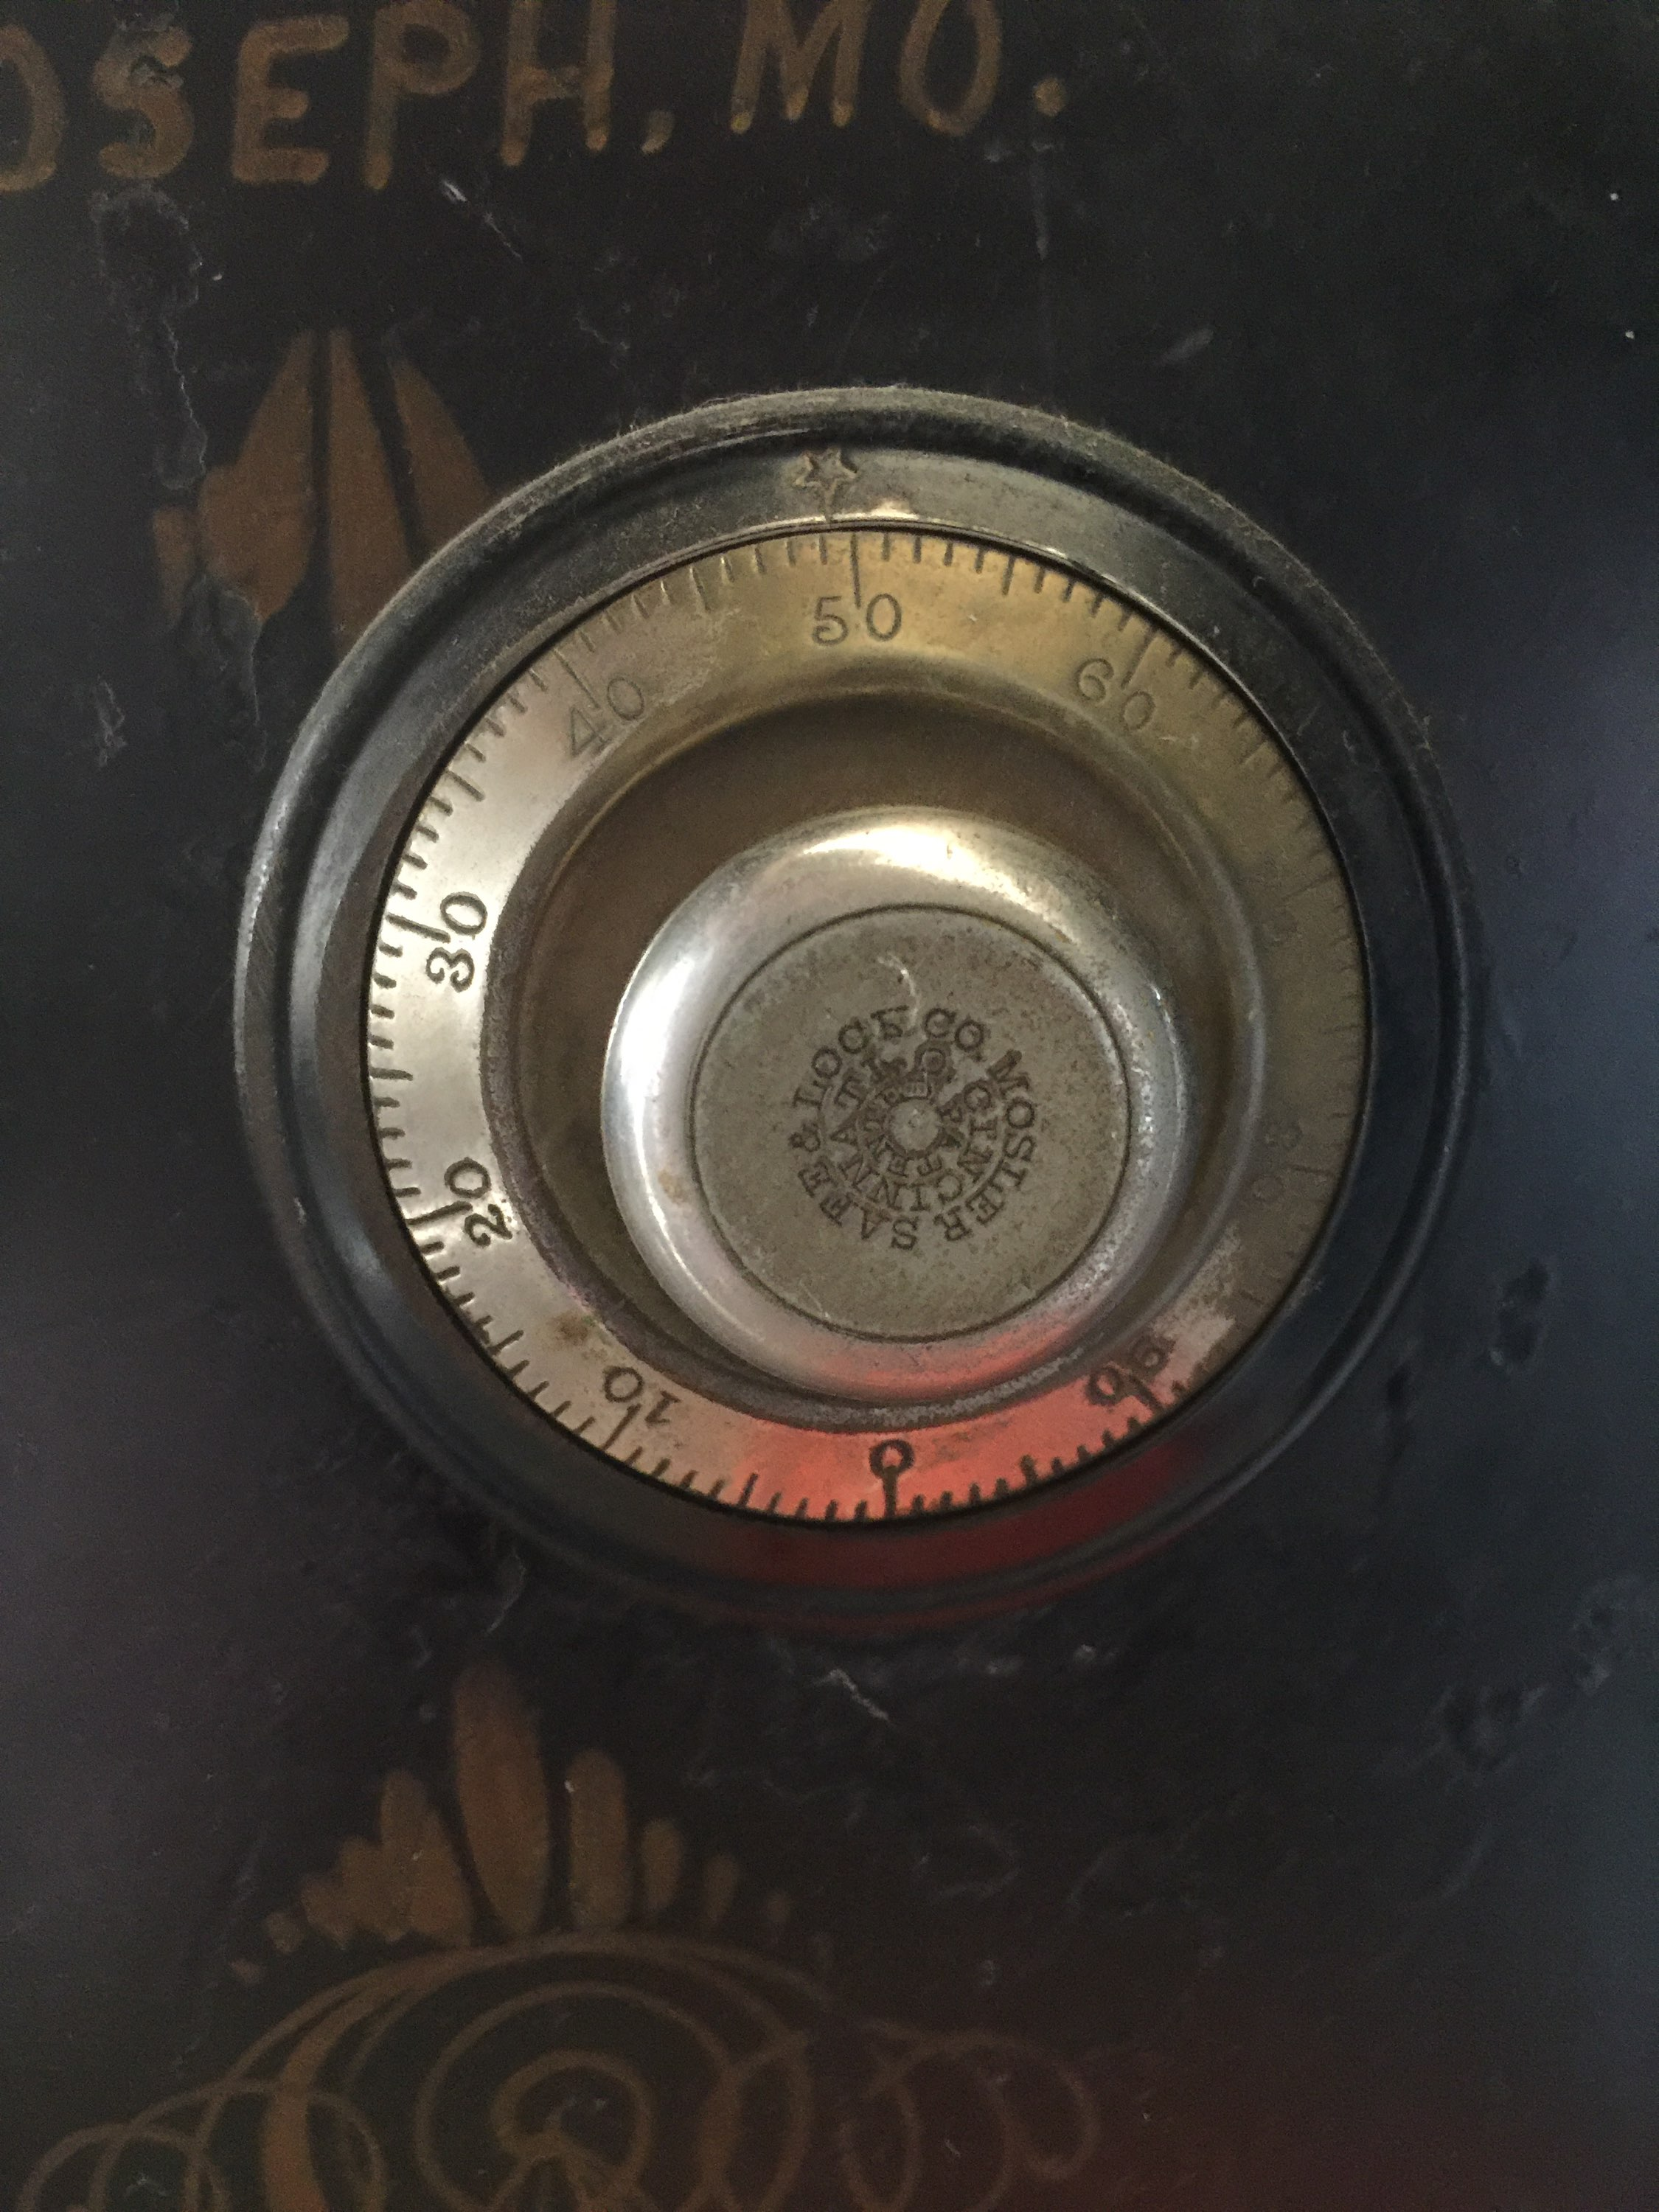 I have a Mosler safe I was trying to get an approximate